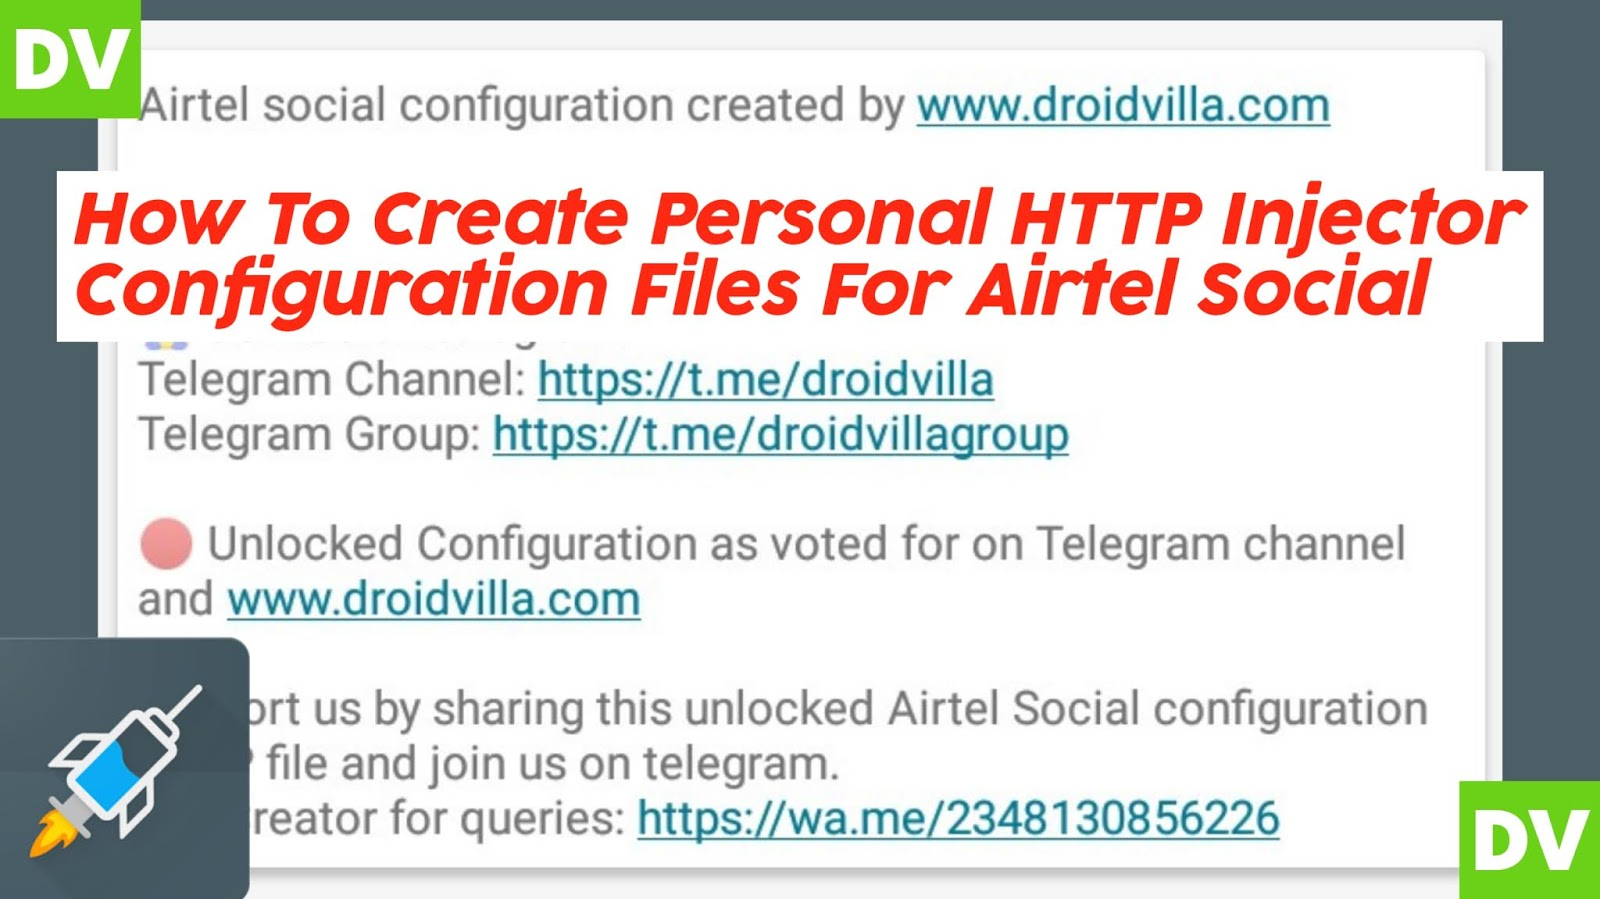 How To Create Personal HTTP Injector Configuration Files For Airtel Social